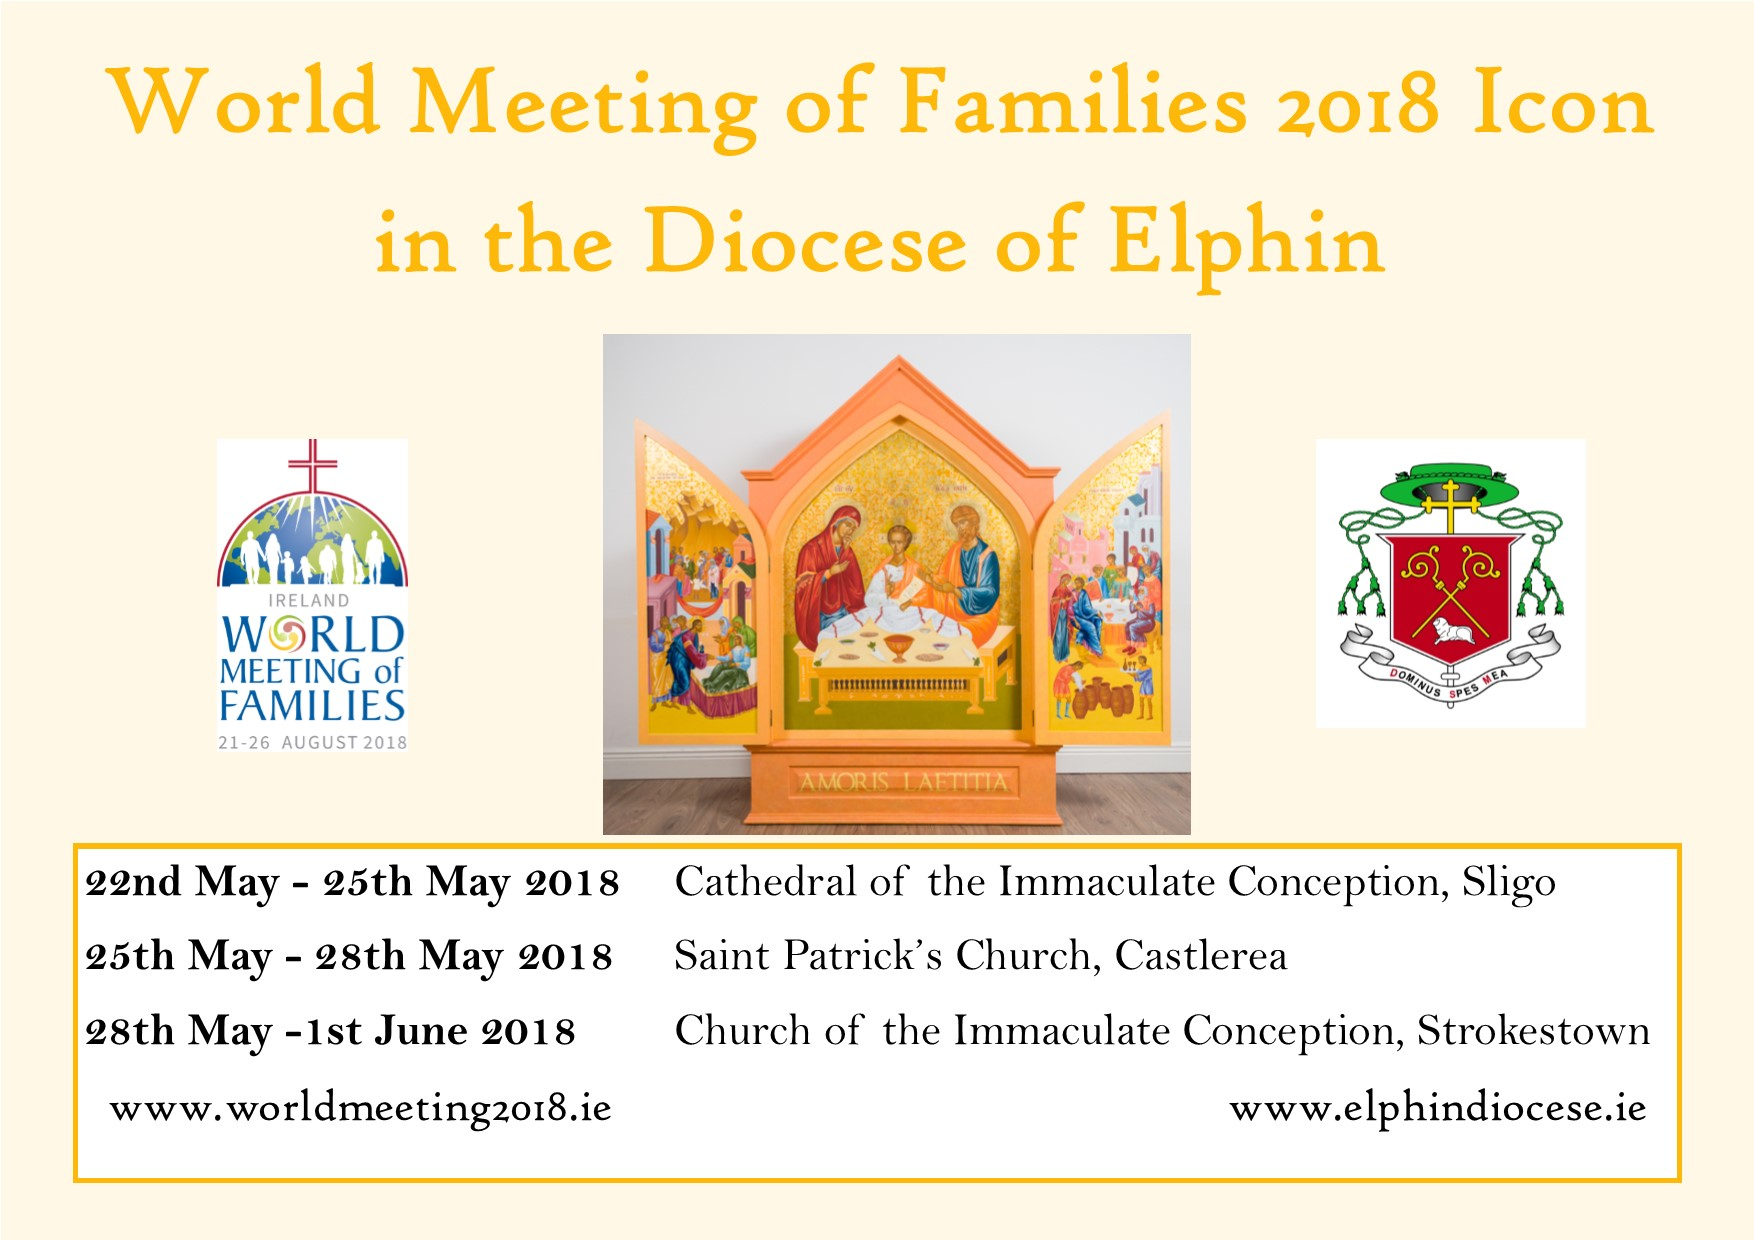 World Meeting of Families 2018 | Elphin Diocesan Website